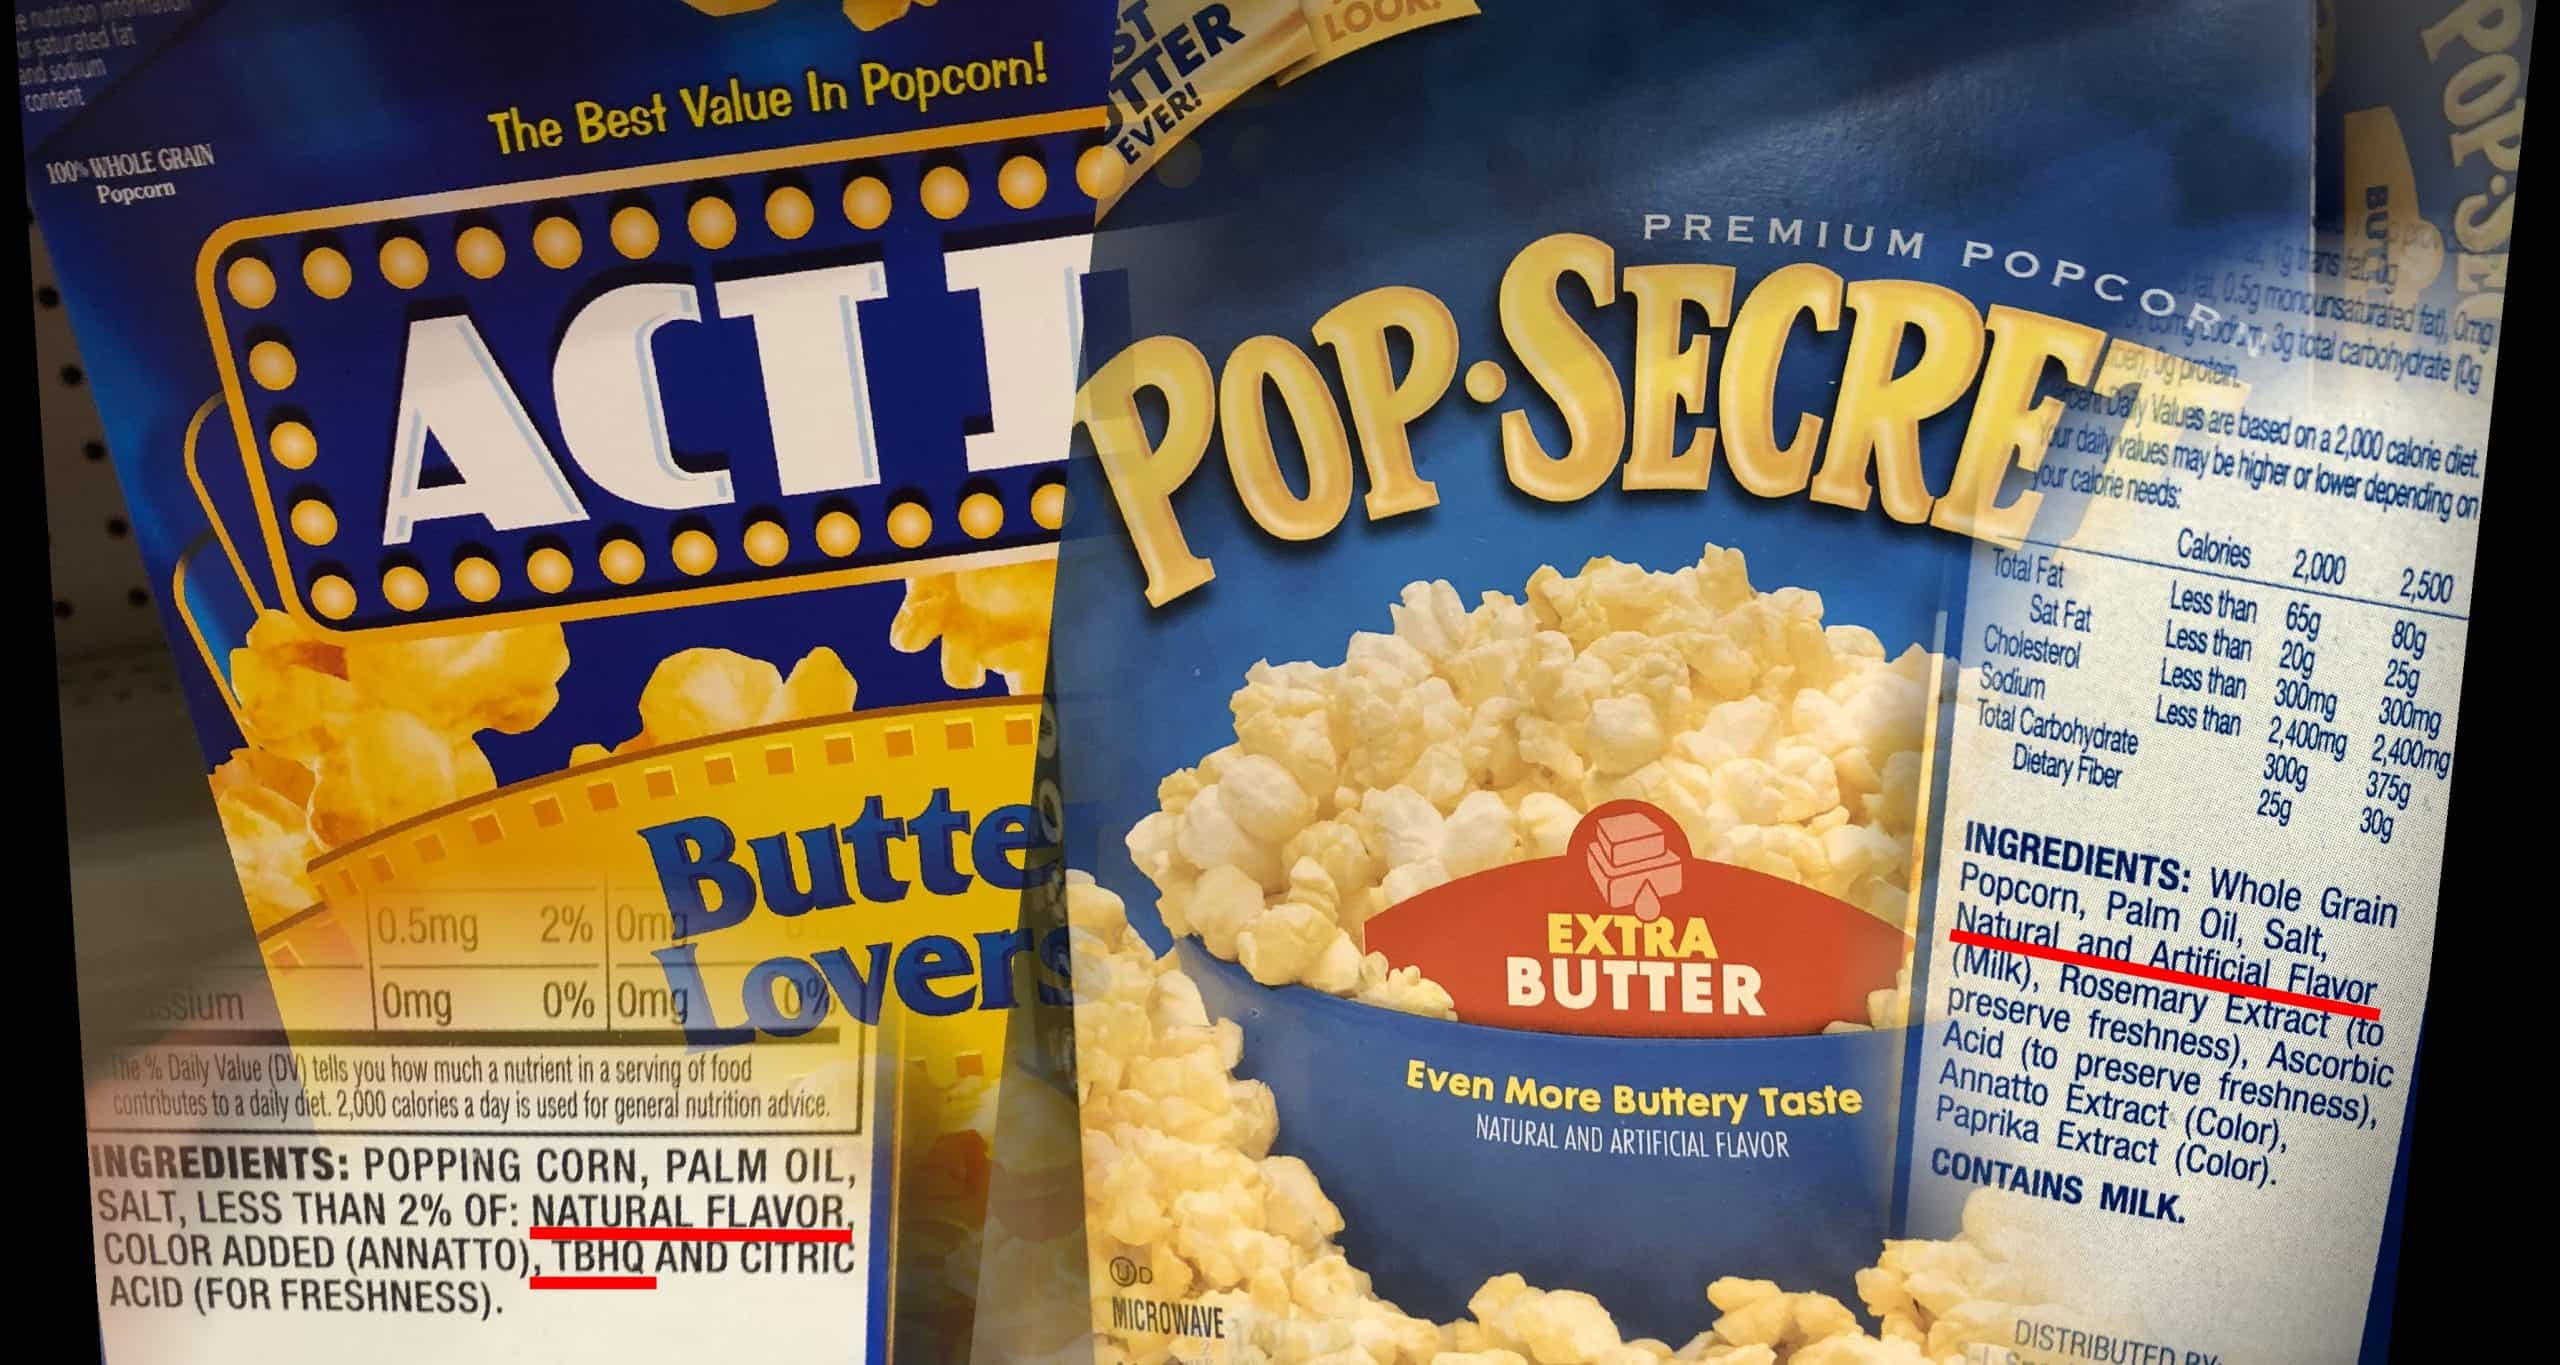 4 microwave popcorn risks you need to